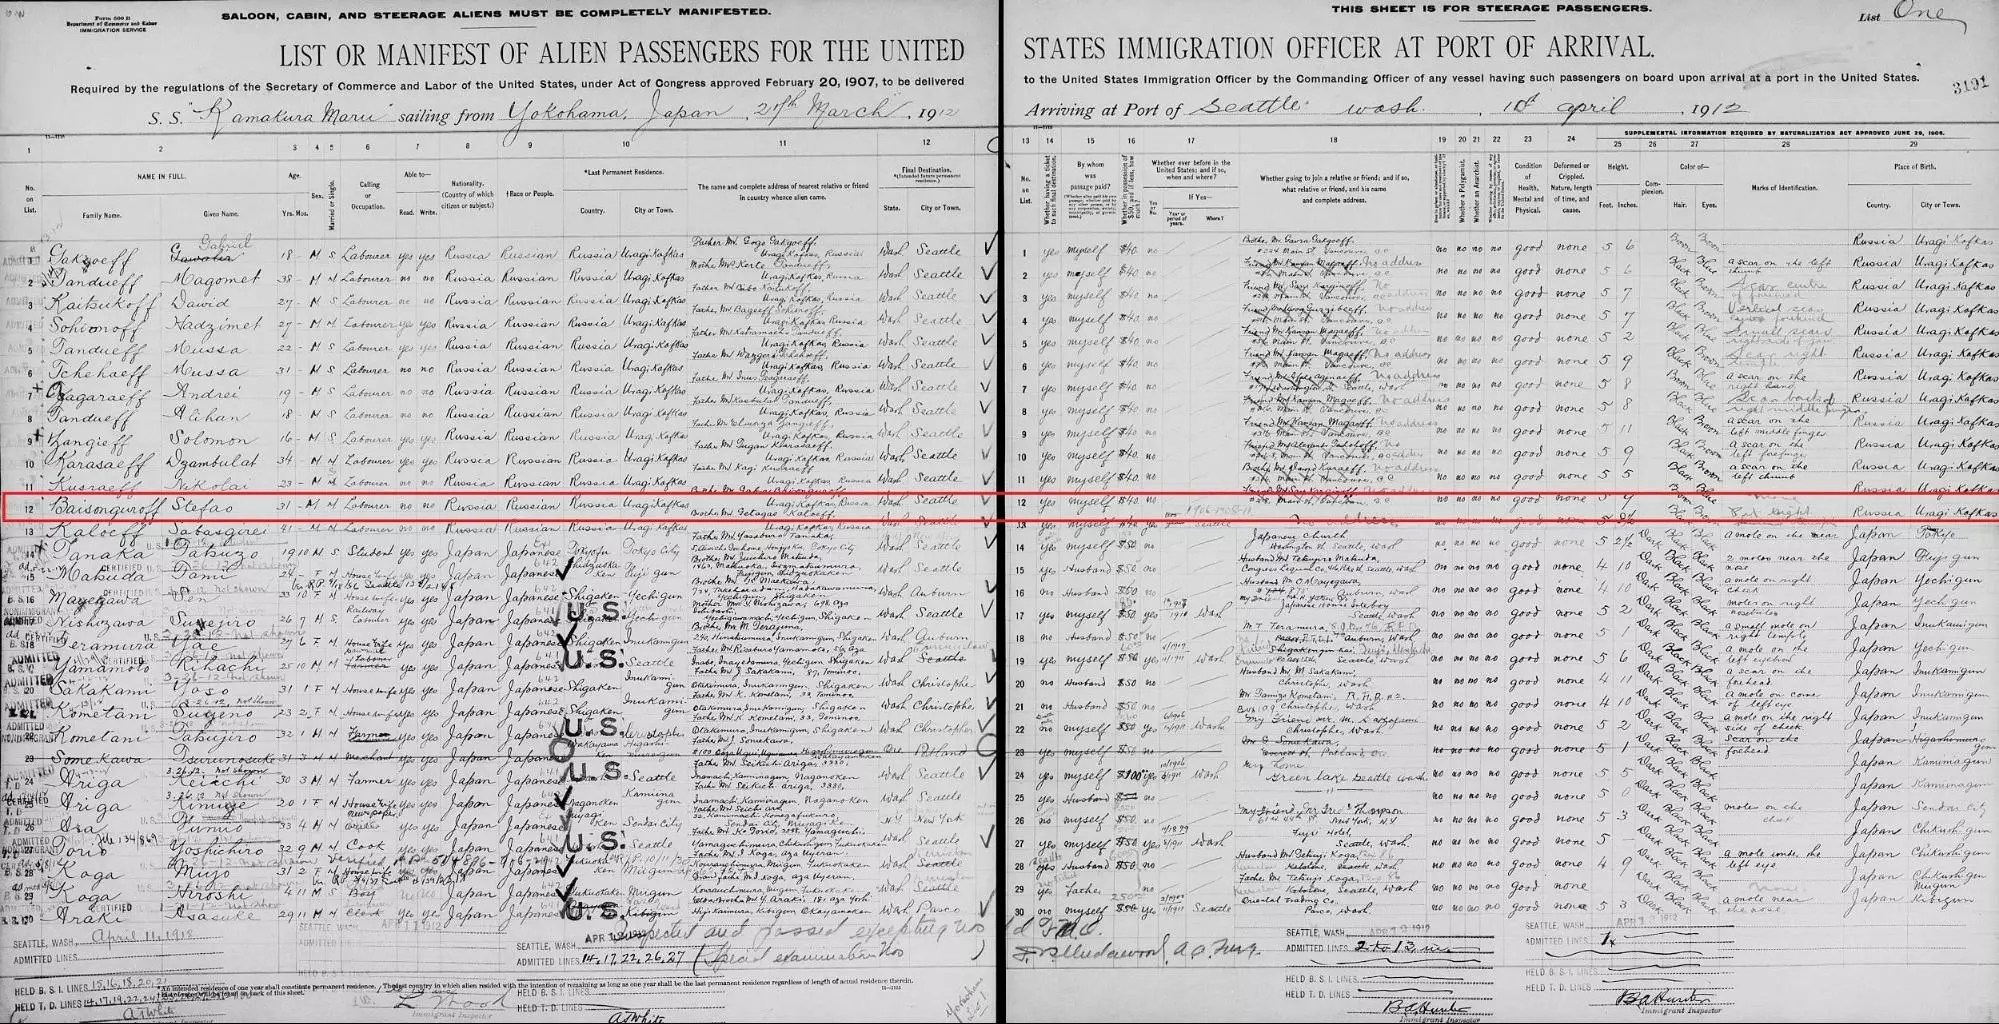 Passenger record of Stefao Baisonguroff, 1912 [Credit: MyHeritage Seattle, Washington Passenger Lists, 1890-1957]